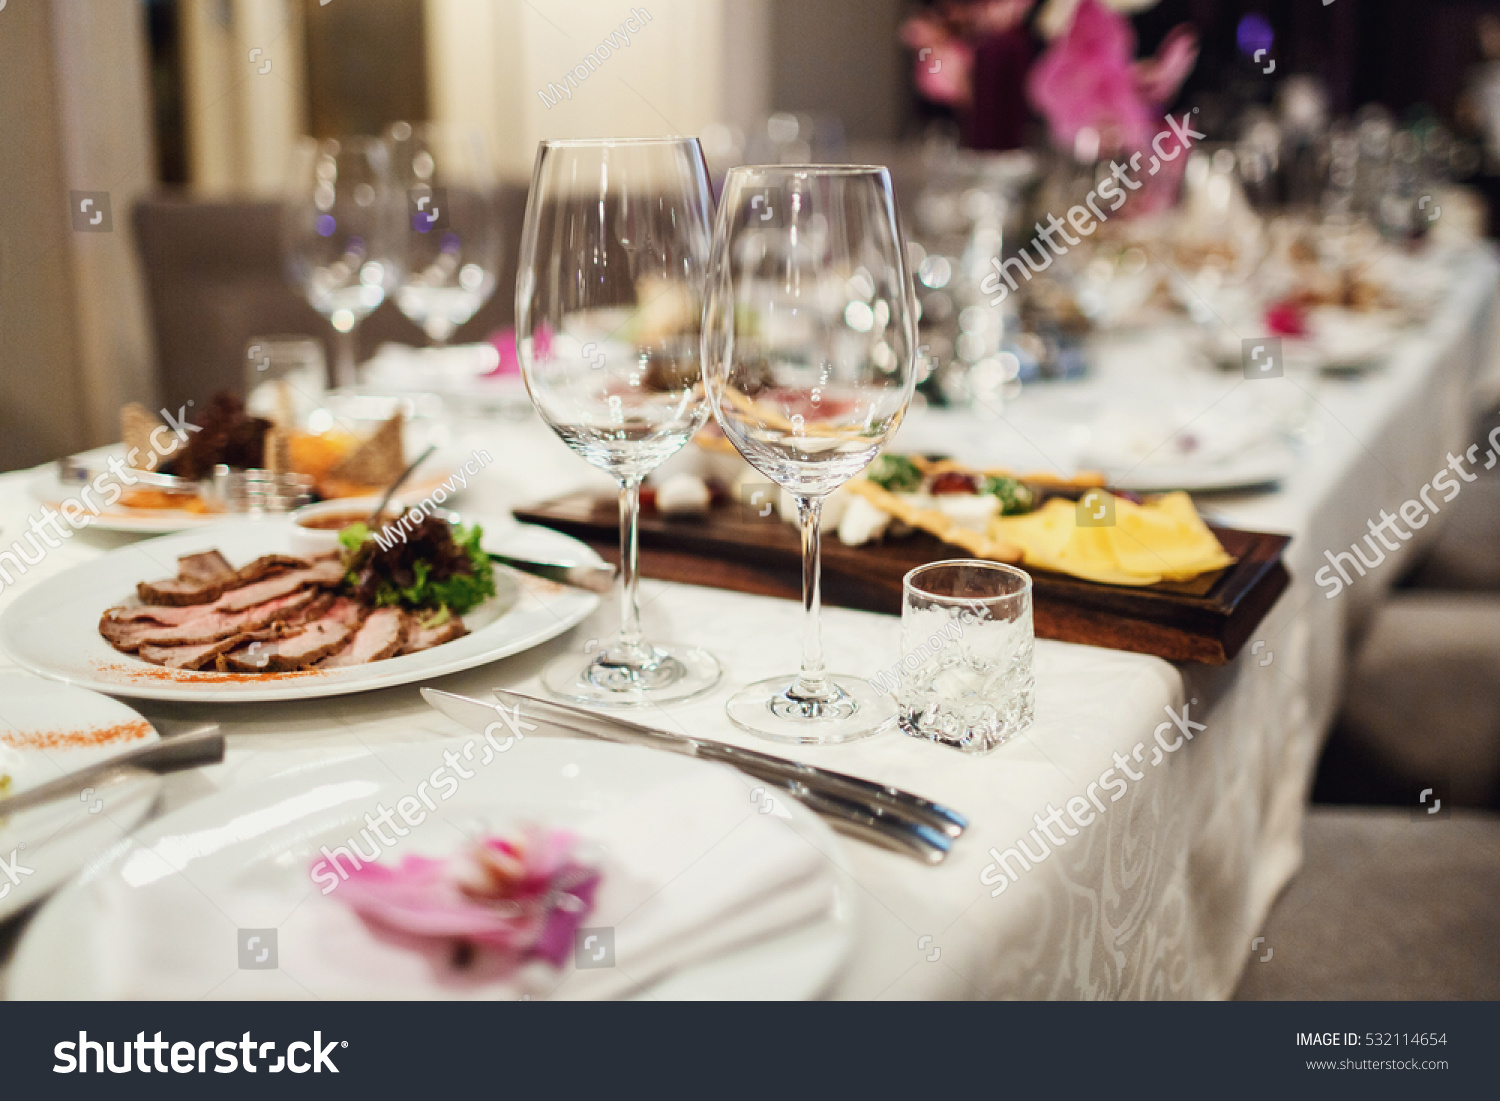 Sparkling Glasses Stand On Dinner Table Before Tray With Meat